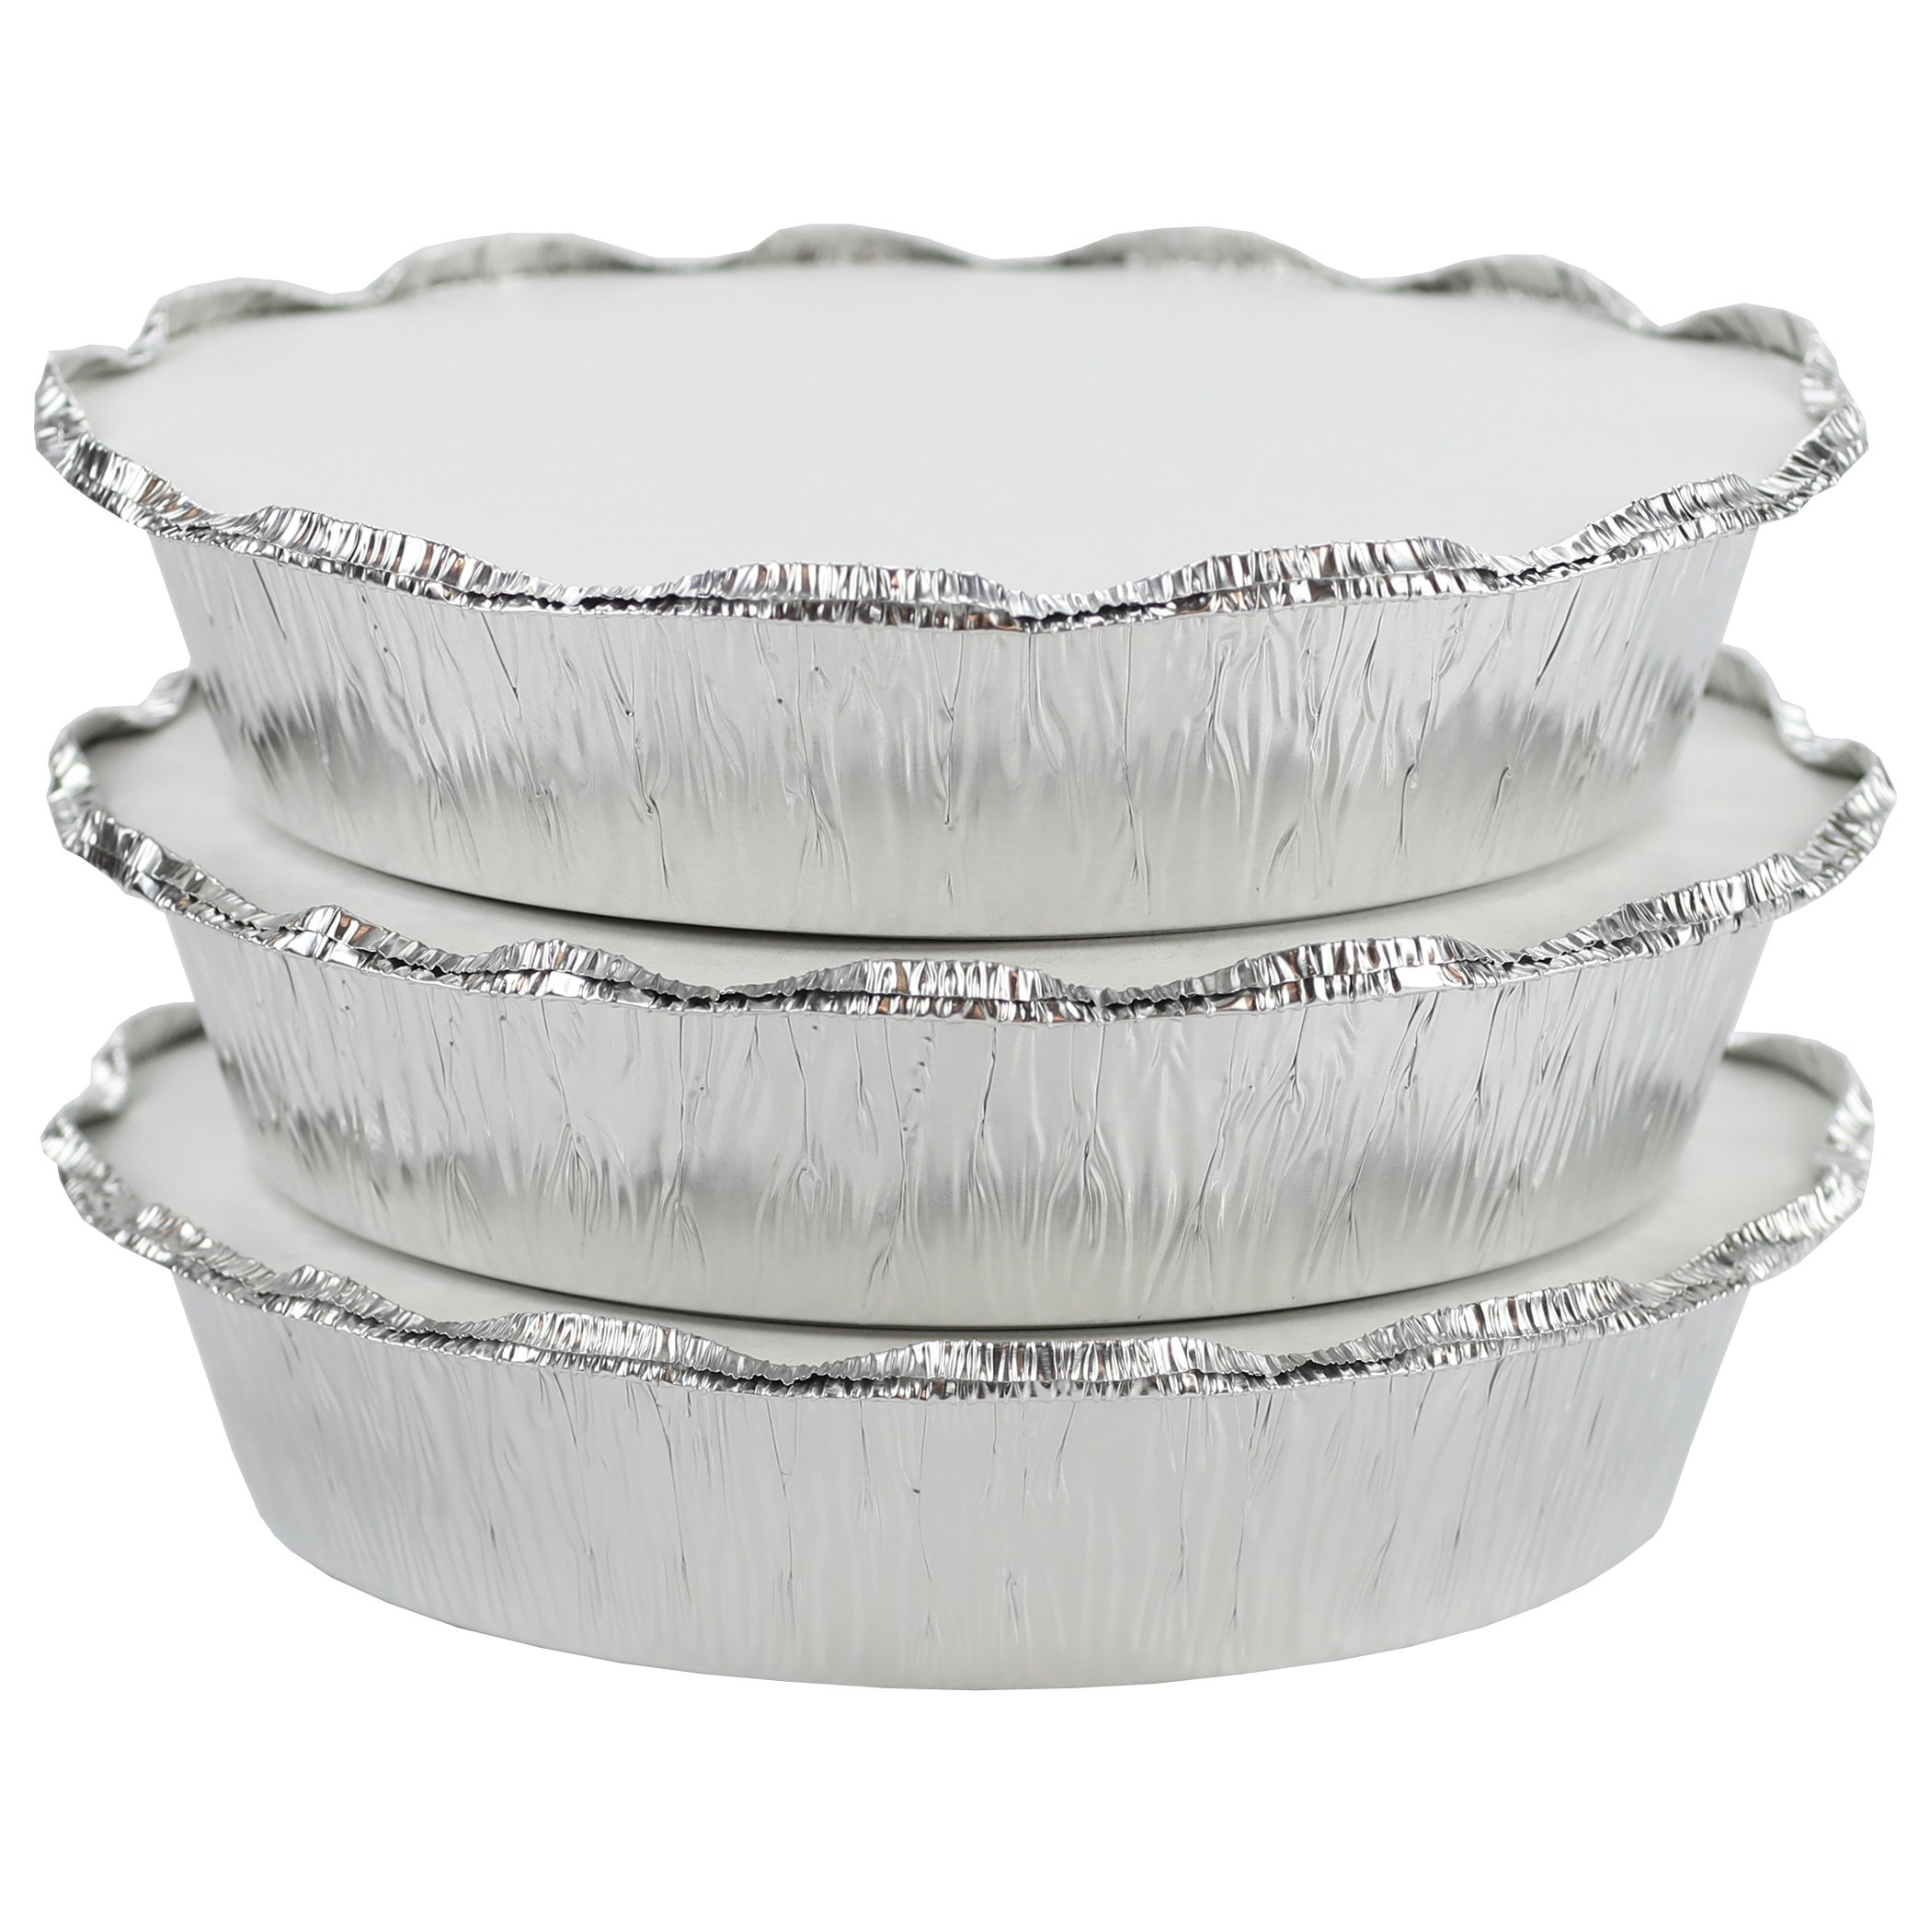 Simply Deliver 9-Inch Round Disposable Take-Out Pan, 30 Gauge Aluminum, 500-Count by Simply Deliver (Image #4)